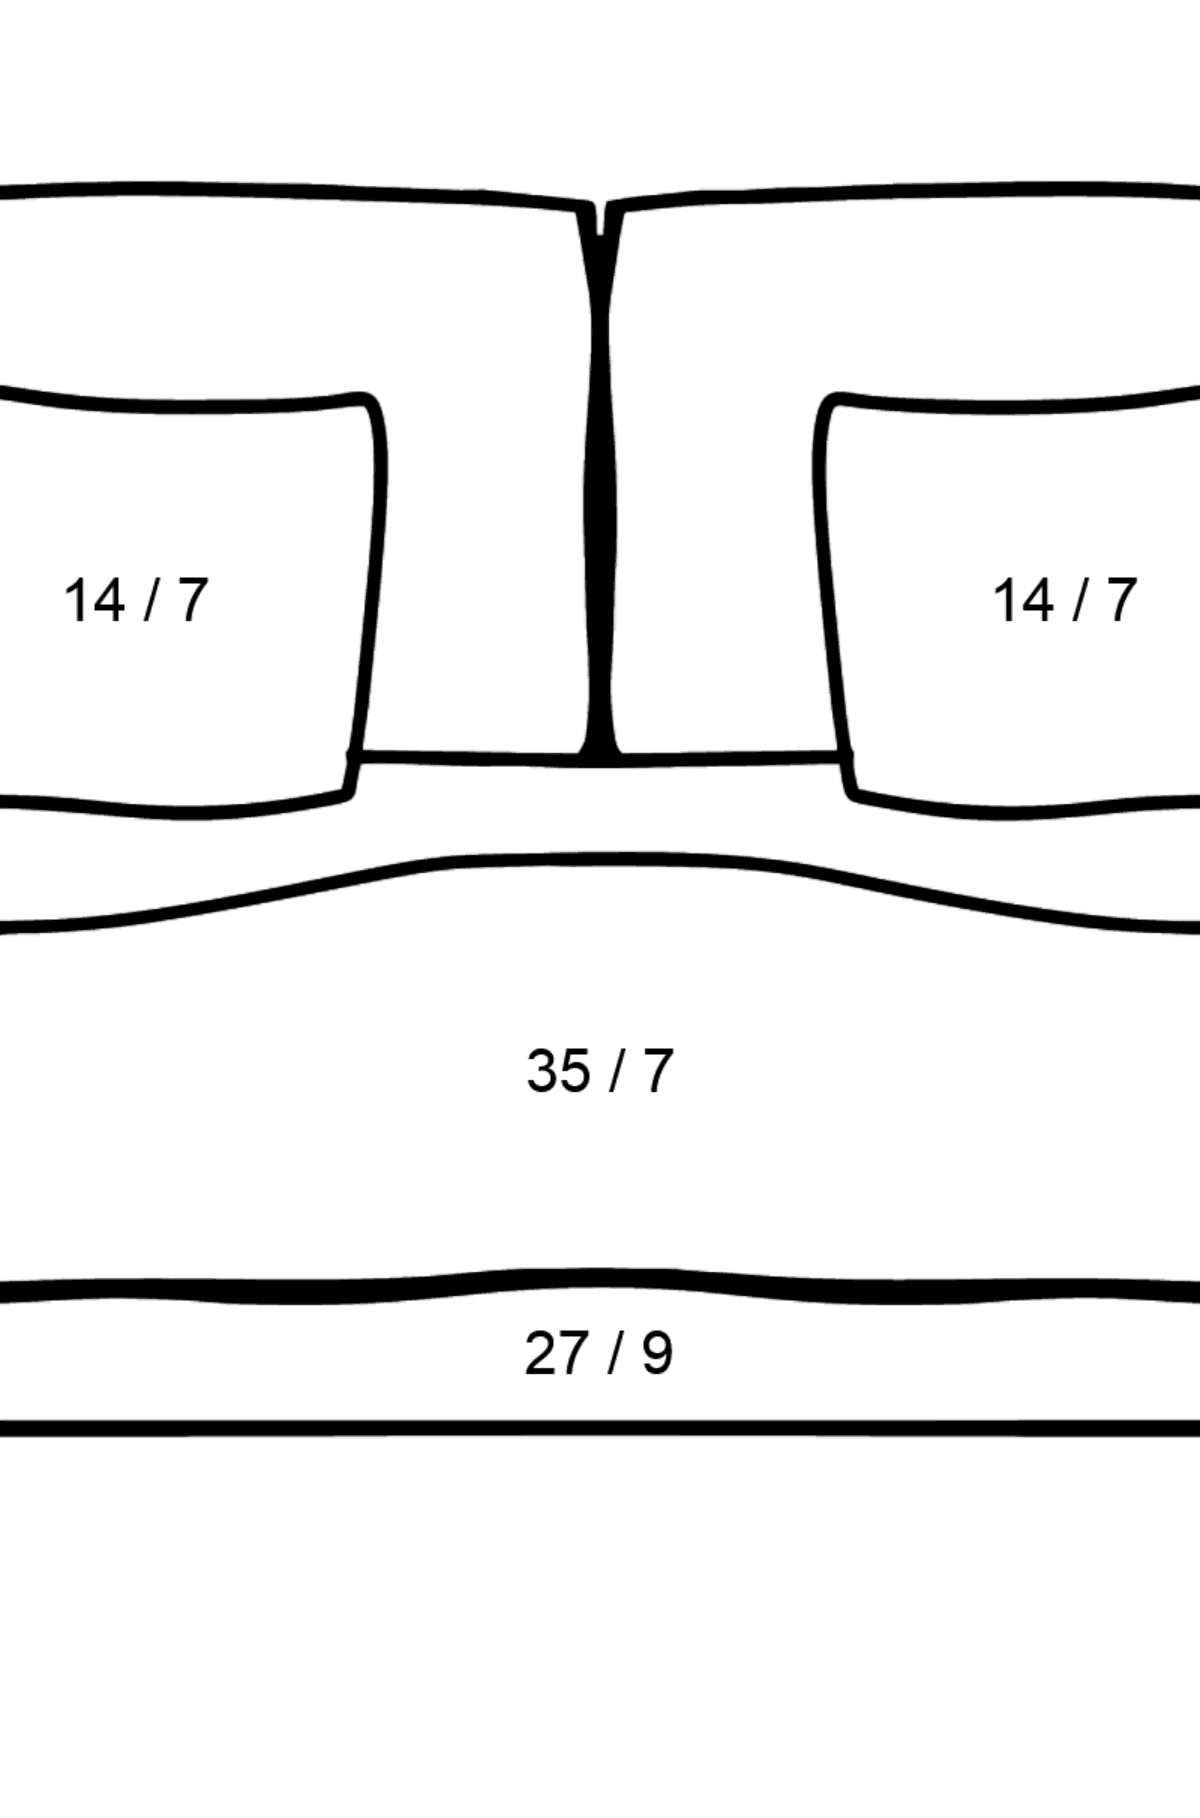 Sofa coloring page - Math Coloring - Division for Kids